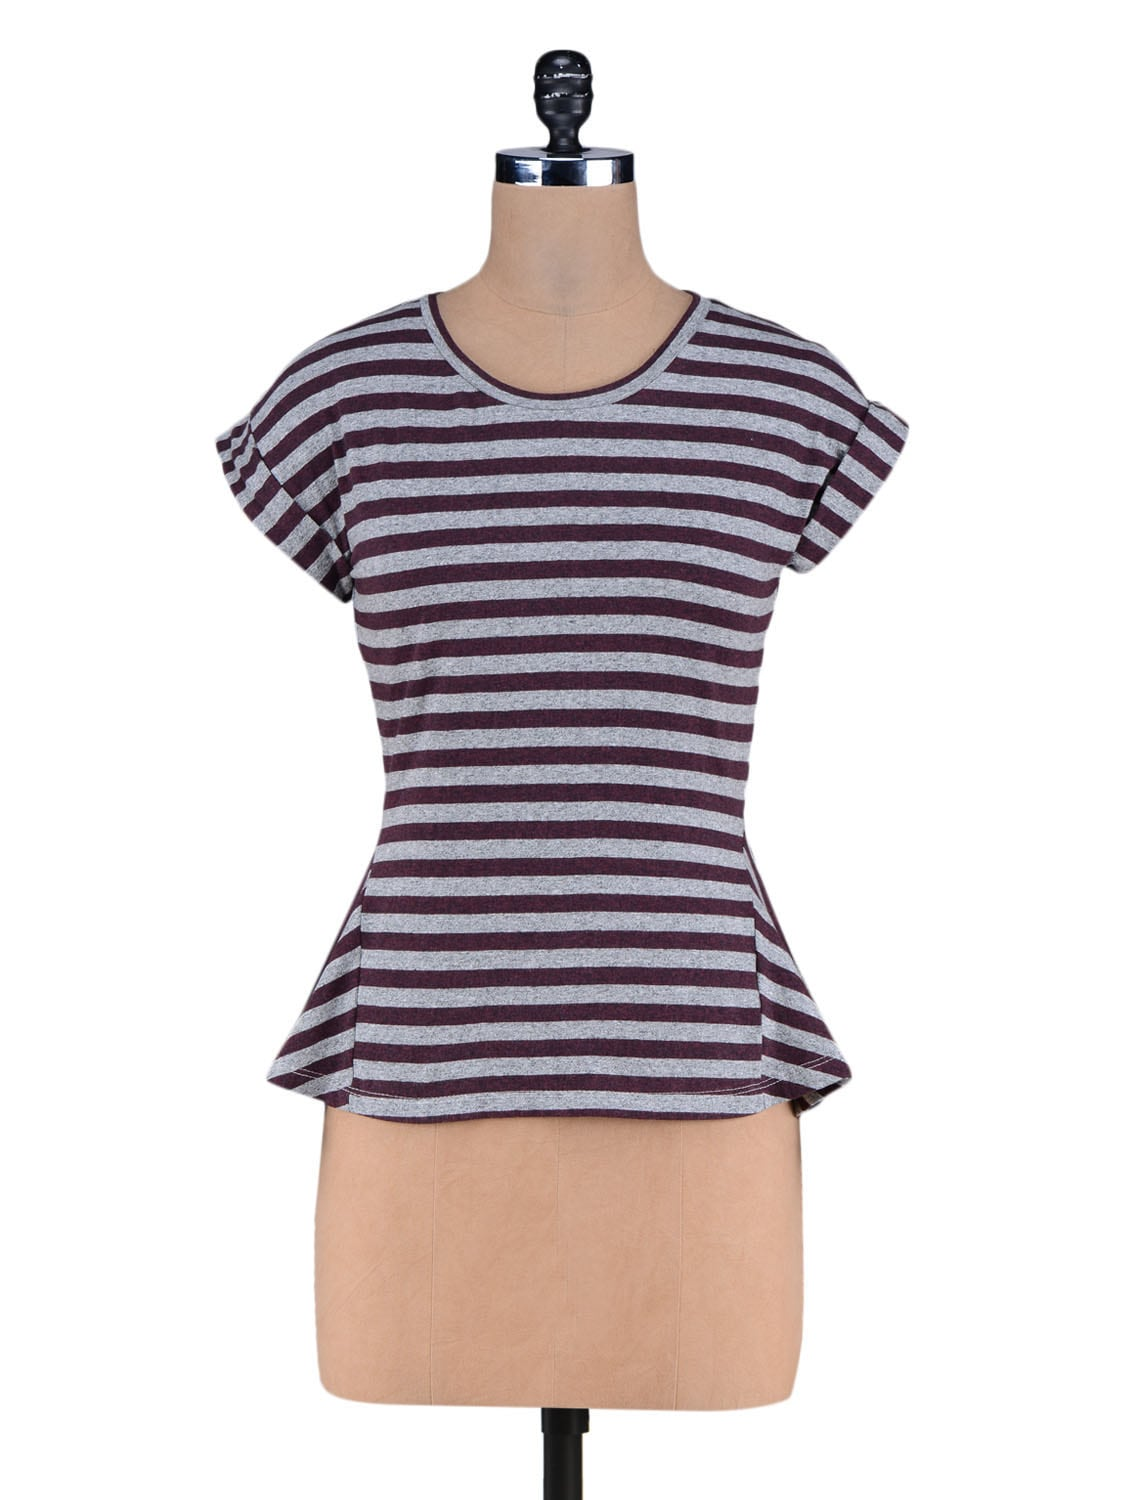 Brown Yarn Dyed Stripes Knitted Cotton Top - By